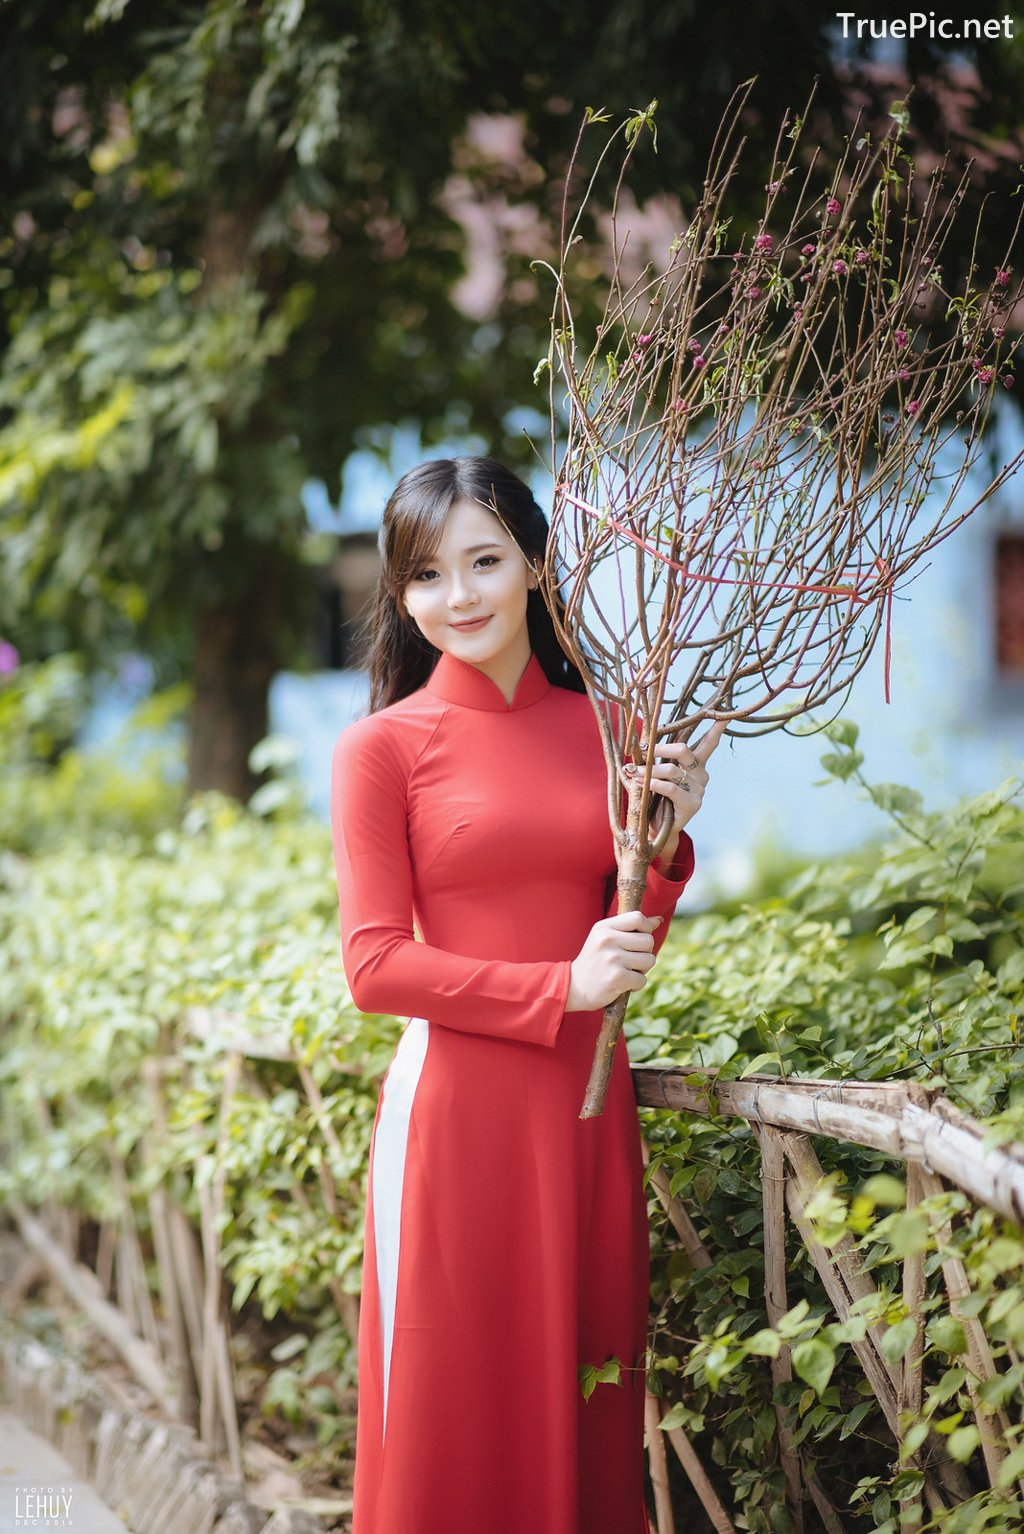 Image-Vietnamese-Model-Beautiful-Girl-and-Ao-Dai-Red-Vietnamese-Traditional-Dress-TruePic.net- Picture-3